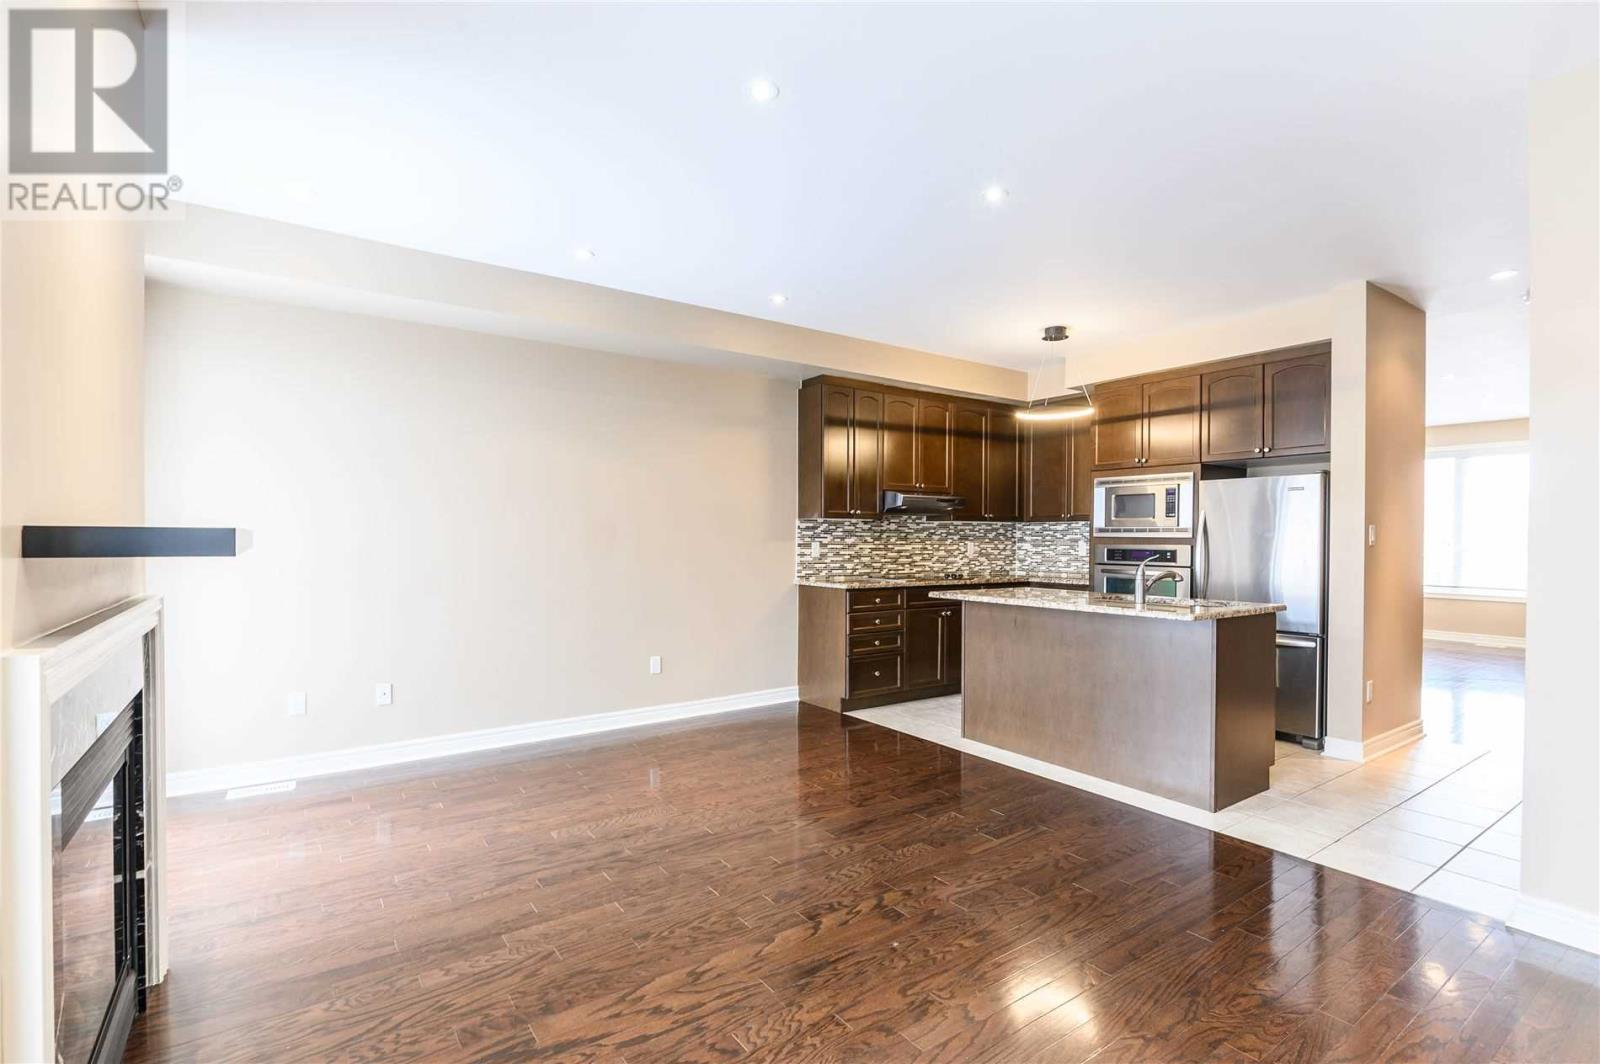 5710 Long Valley Rd, Mississauga, Ontario  L5M 0M1 - Photo 9 - W4674367